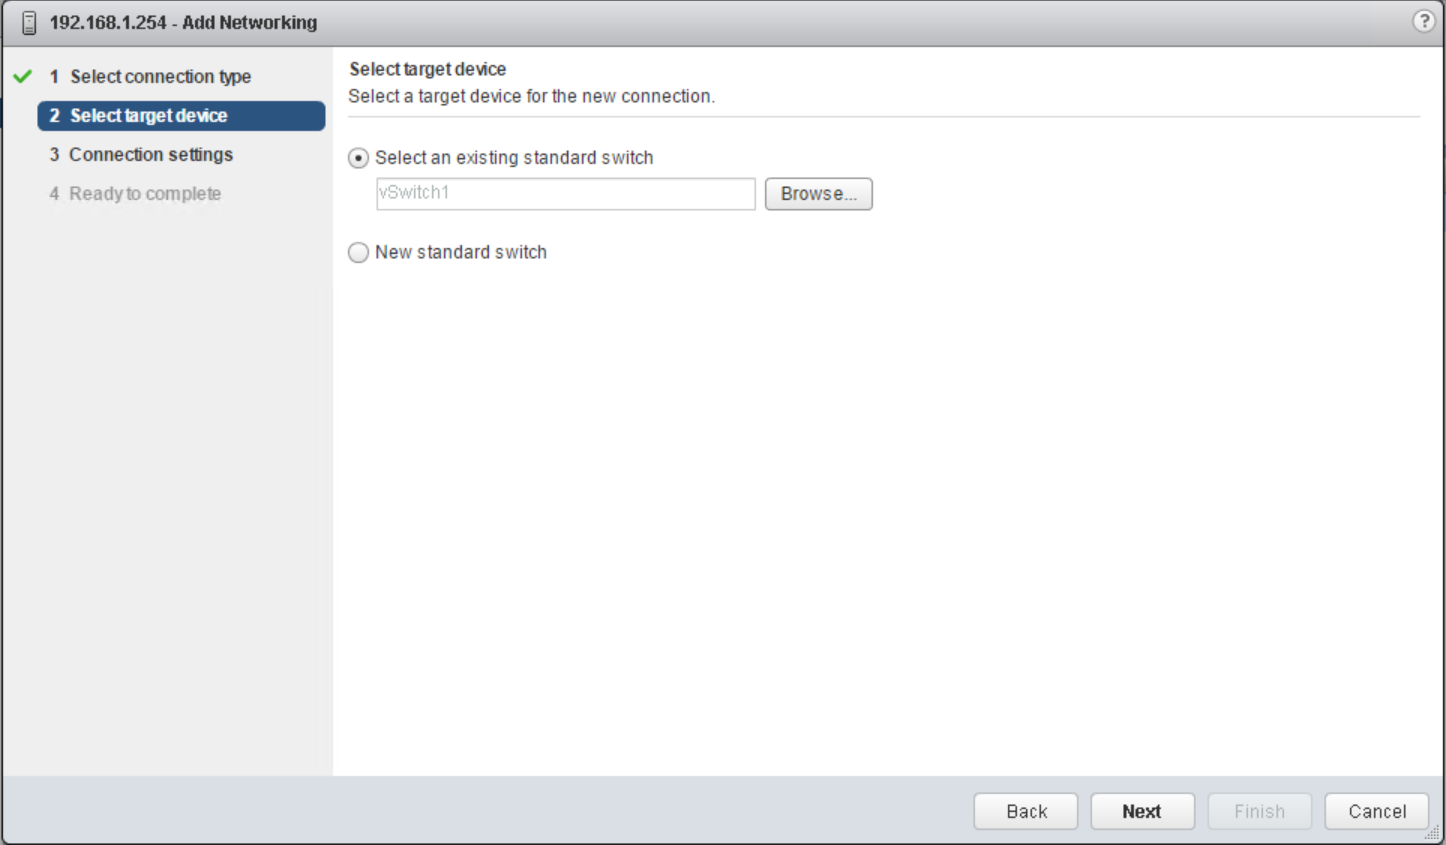 domalab.com vSphere Standard Switches select